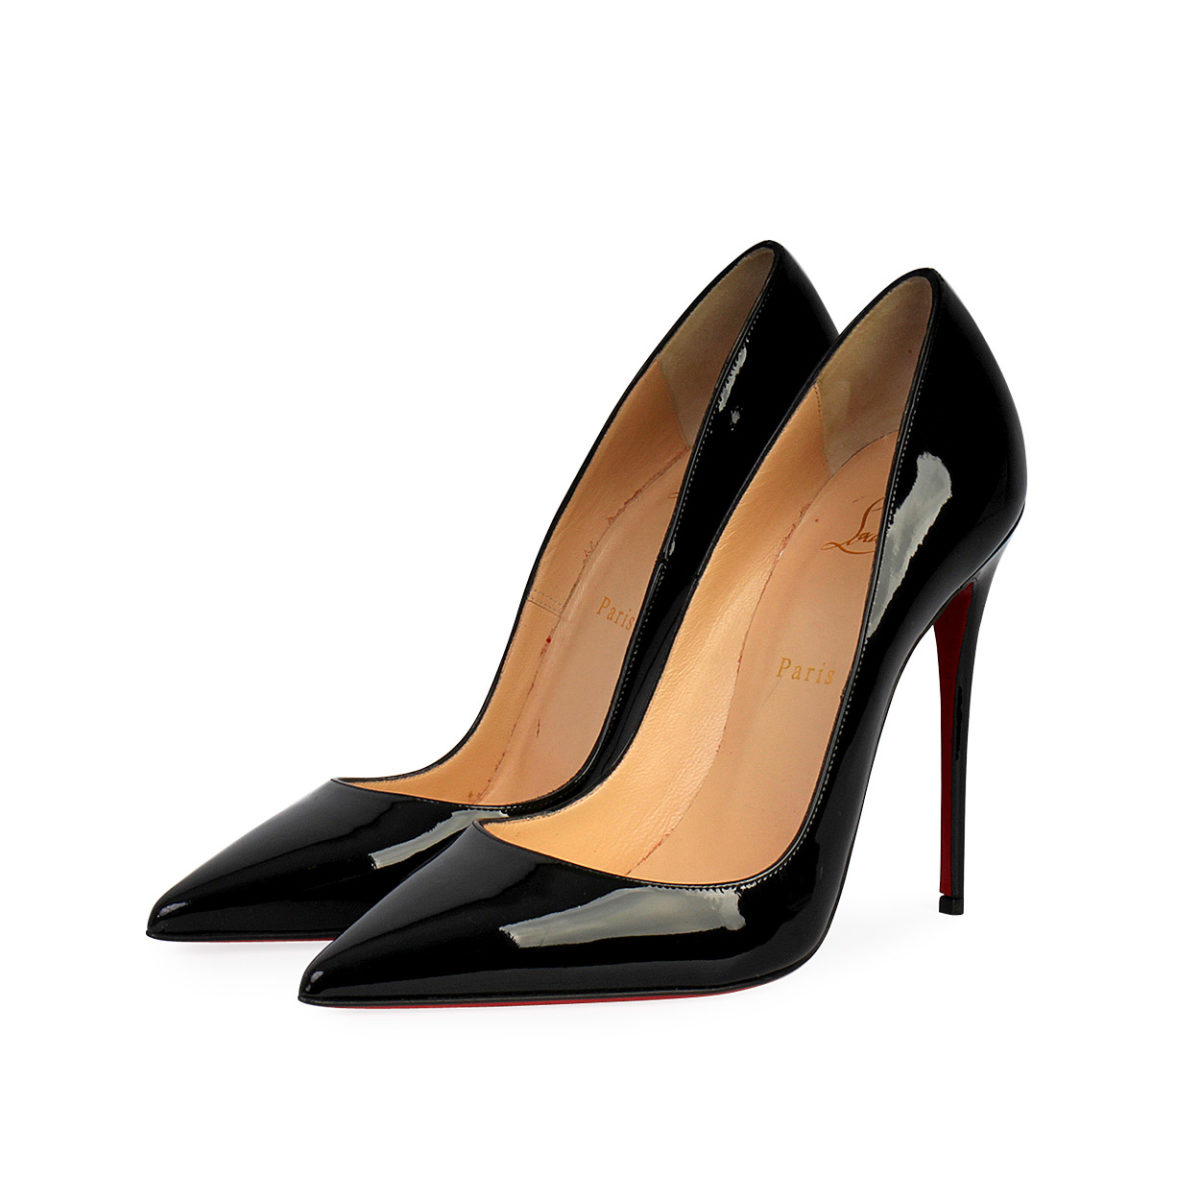 8dace808ee1 CHRISTIAN LOUBOUTIN Patent Leather So Kate 120 Pumps Black - S: 39 (6)